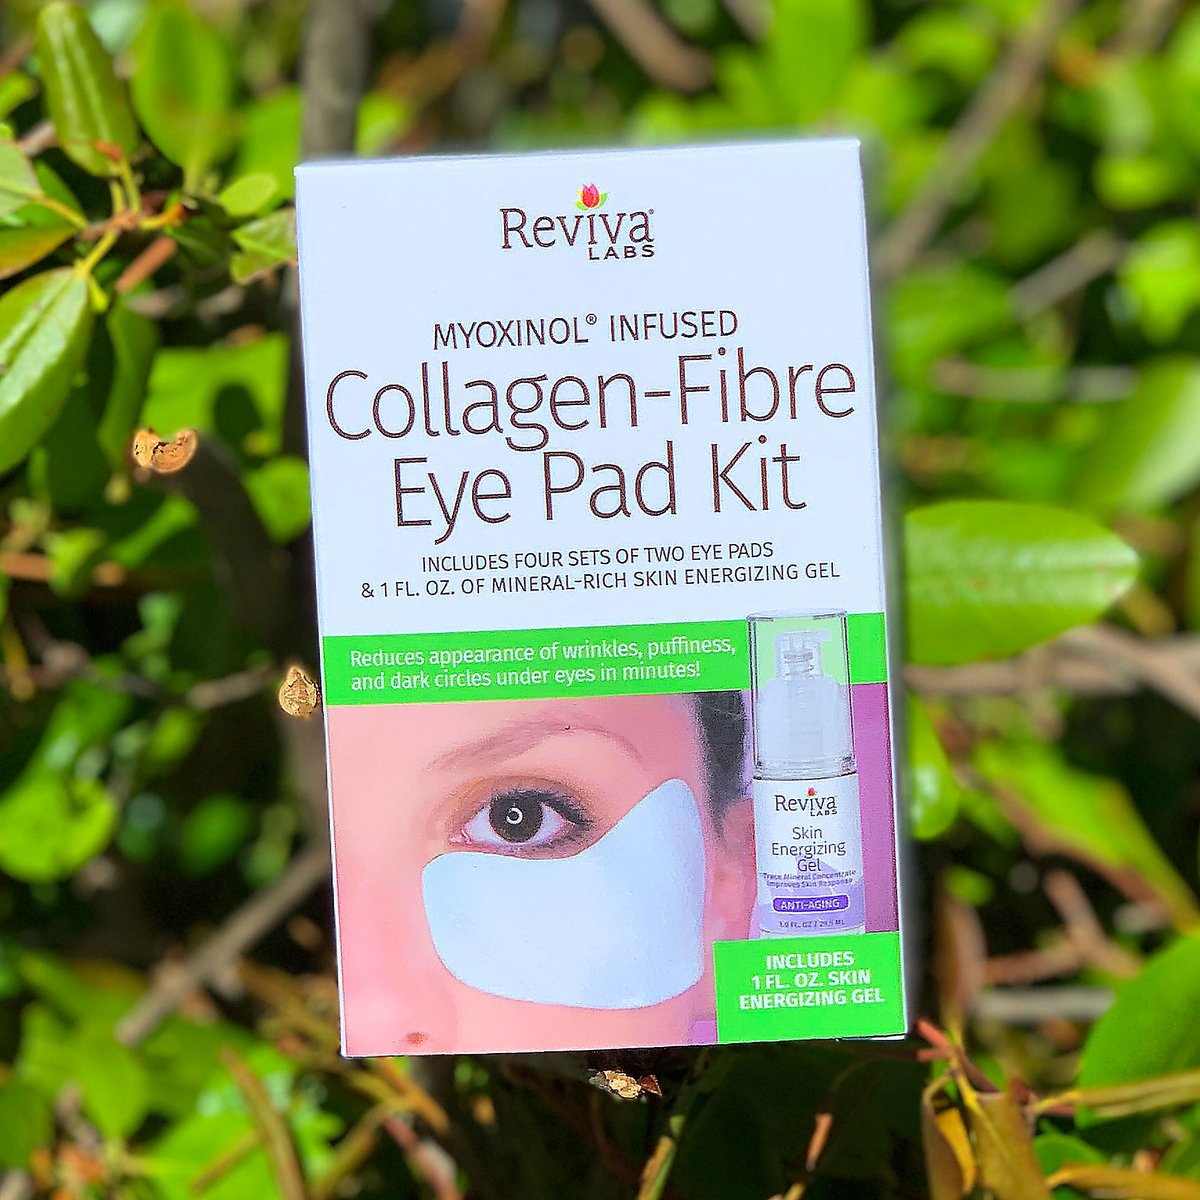 Reduces appearance of wrinkles, puffiness, and dark circles under eyes in minutes! Perfect for a quick eye area pick-me-up before a night out. . https://t.co/QcZcMODHAE . #collagen #fiber #eyepads https://t.co/eaXVFocAlP